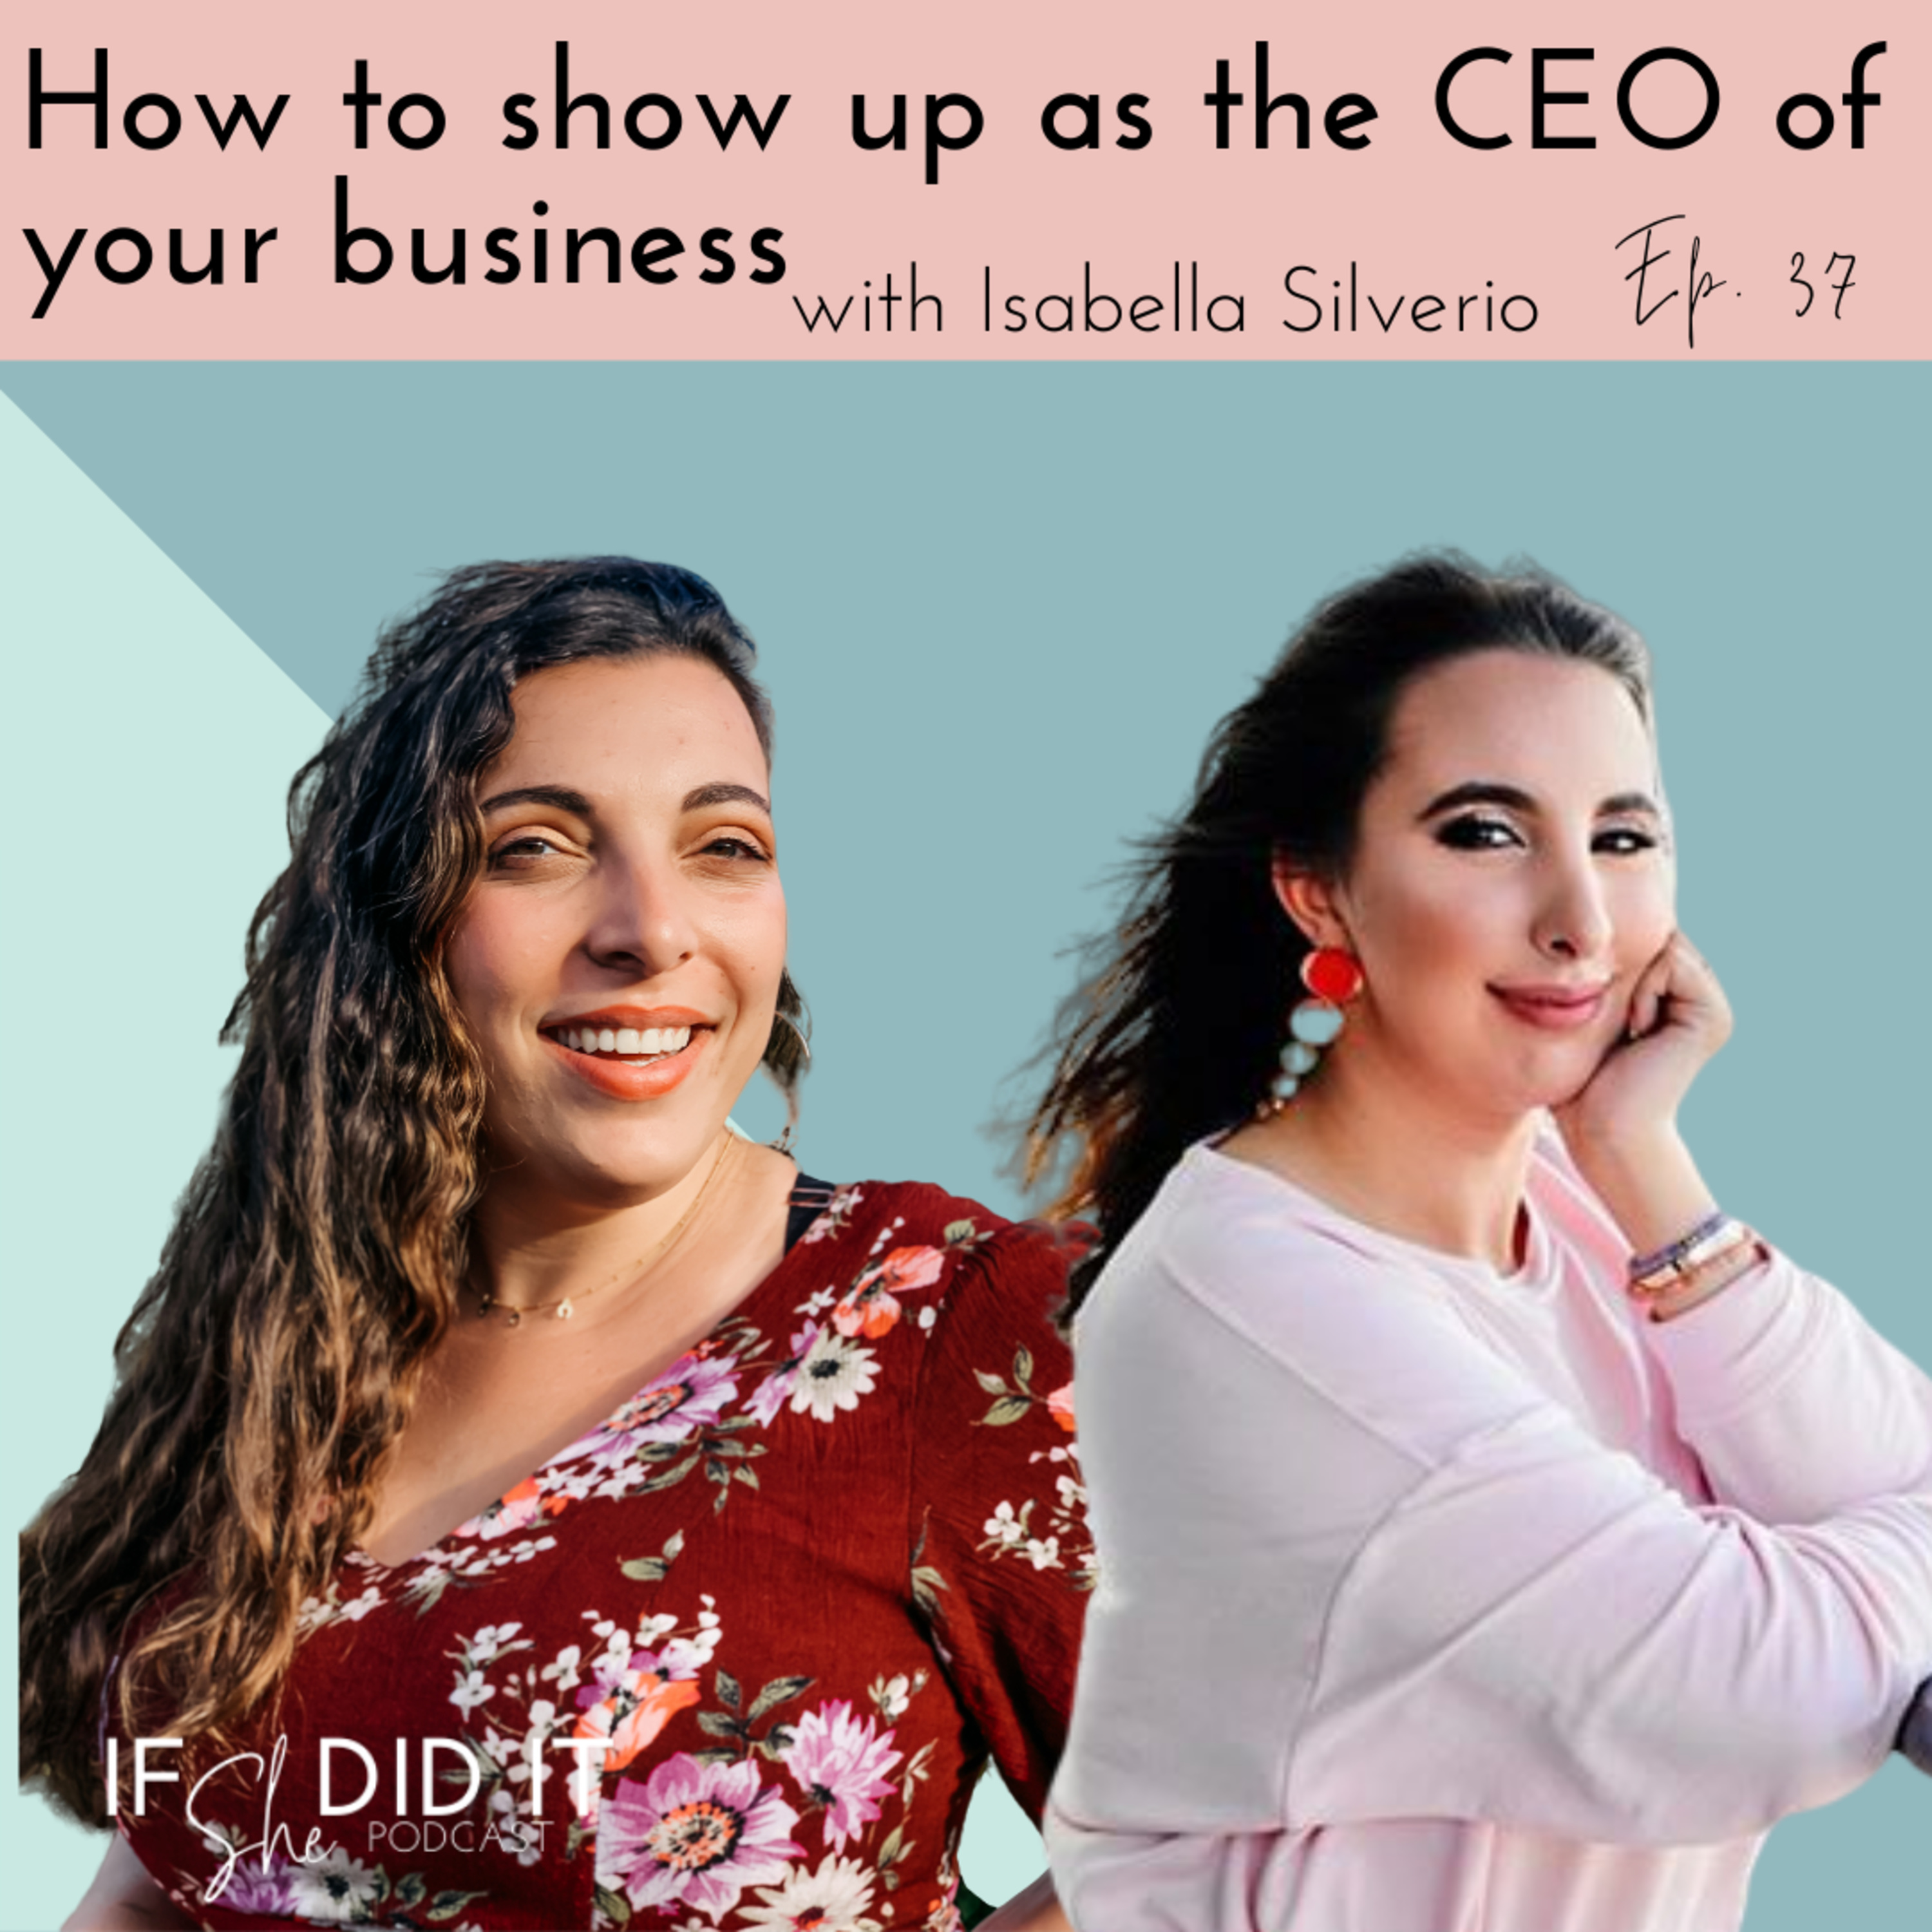 How to Show Up as the CEO of Your Business